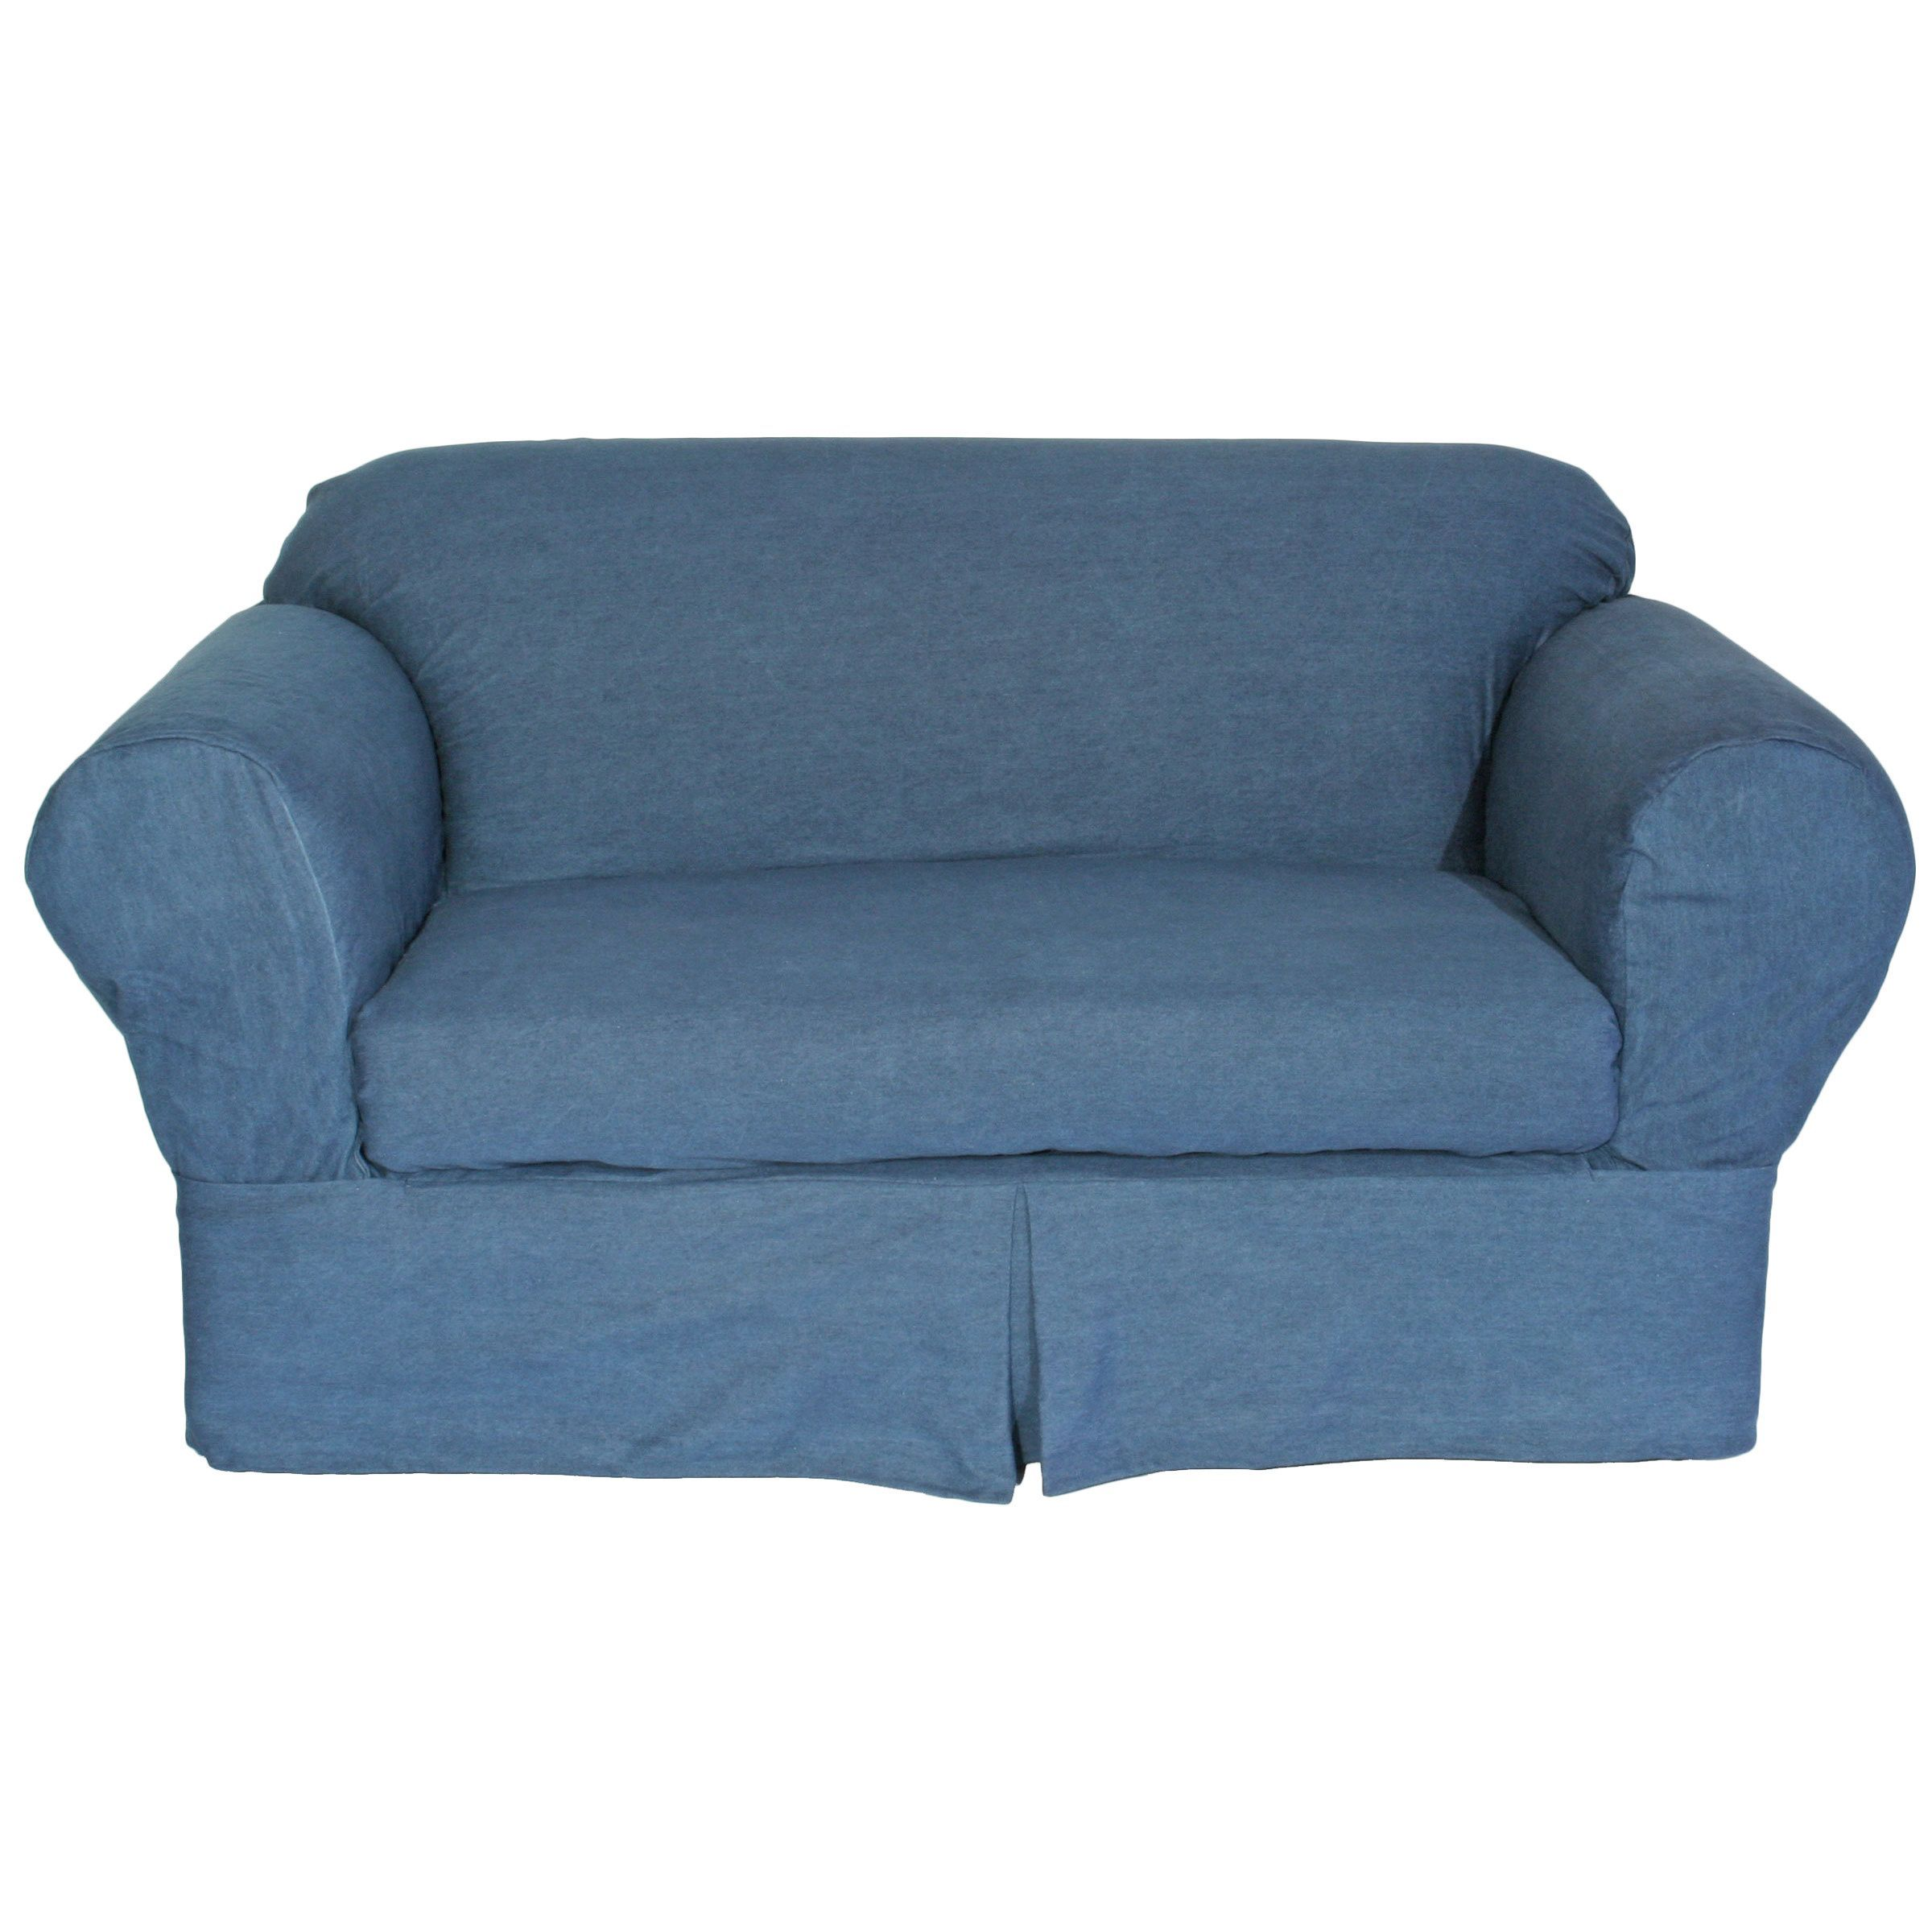 Washed Heavy Denim Cotton 2-Piece Loveseat Slipcover (Washed ...